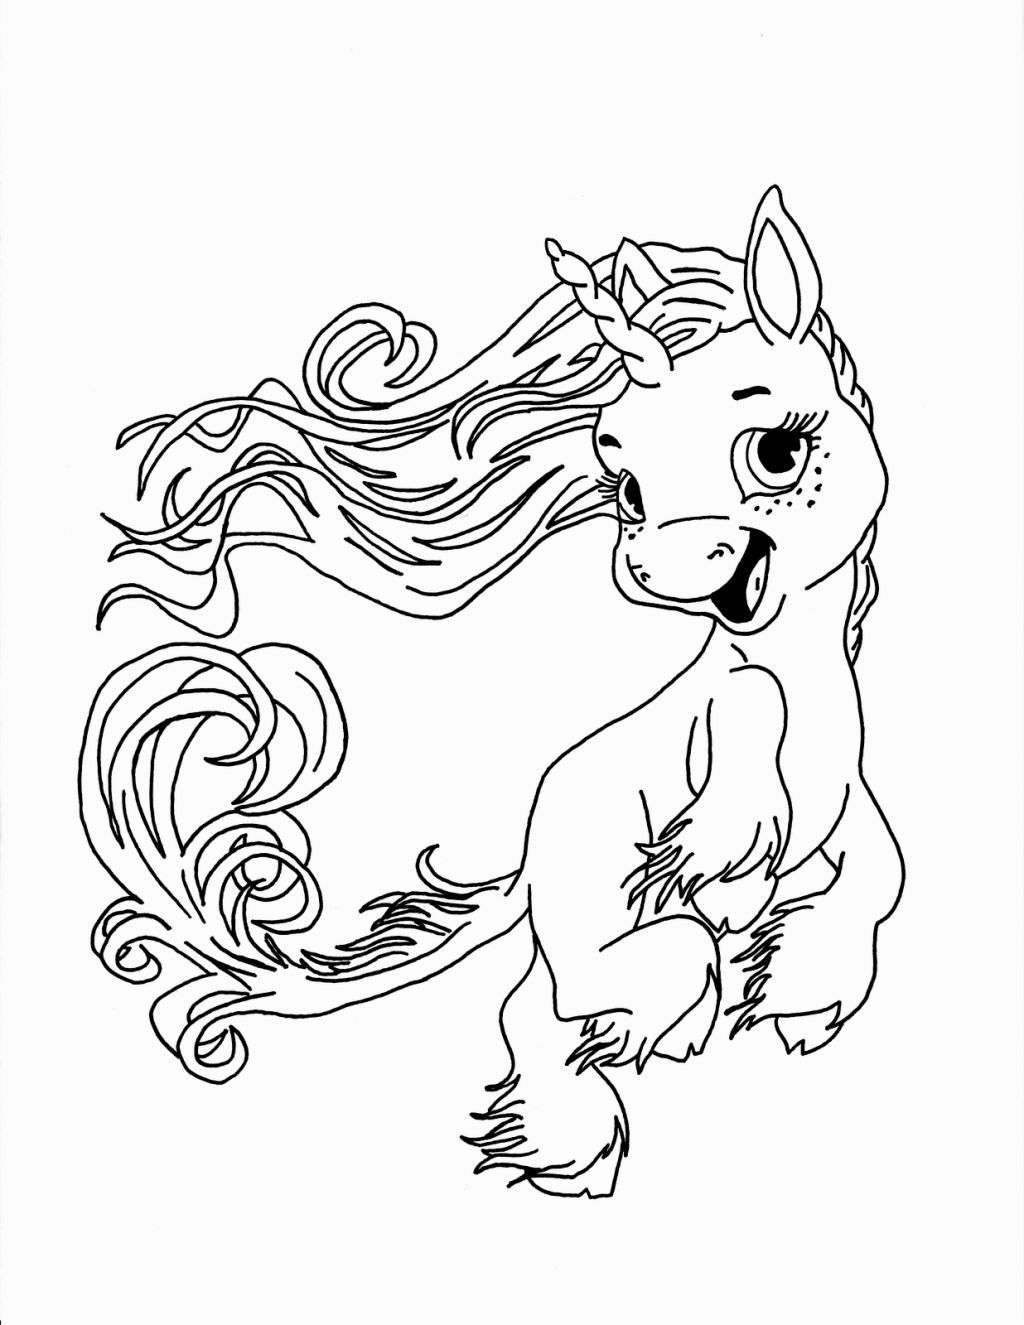 Unicorn Coloring Pages (With images) Unicorn coloring